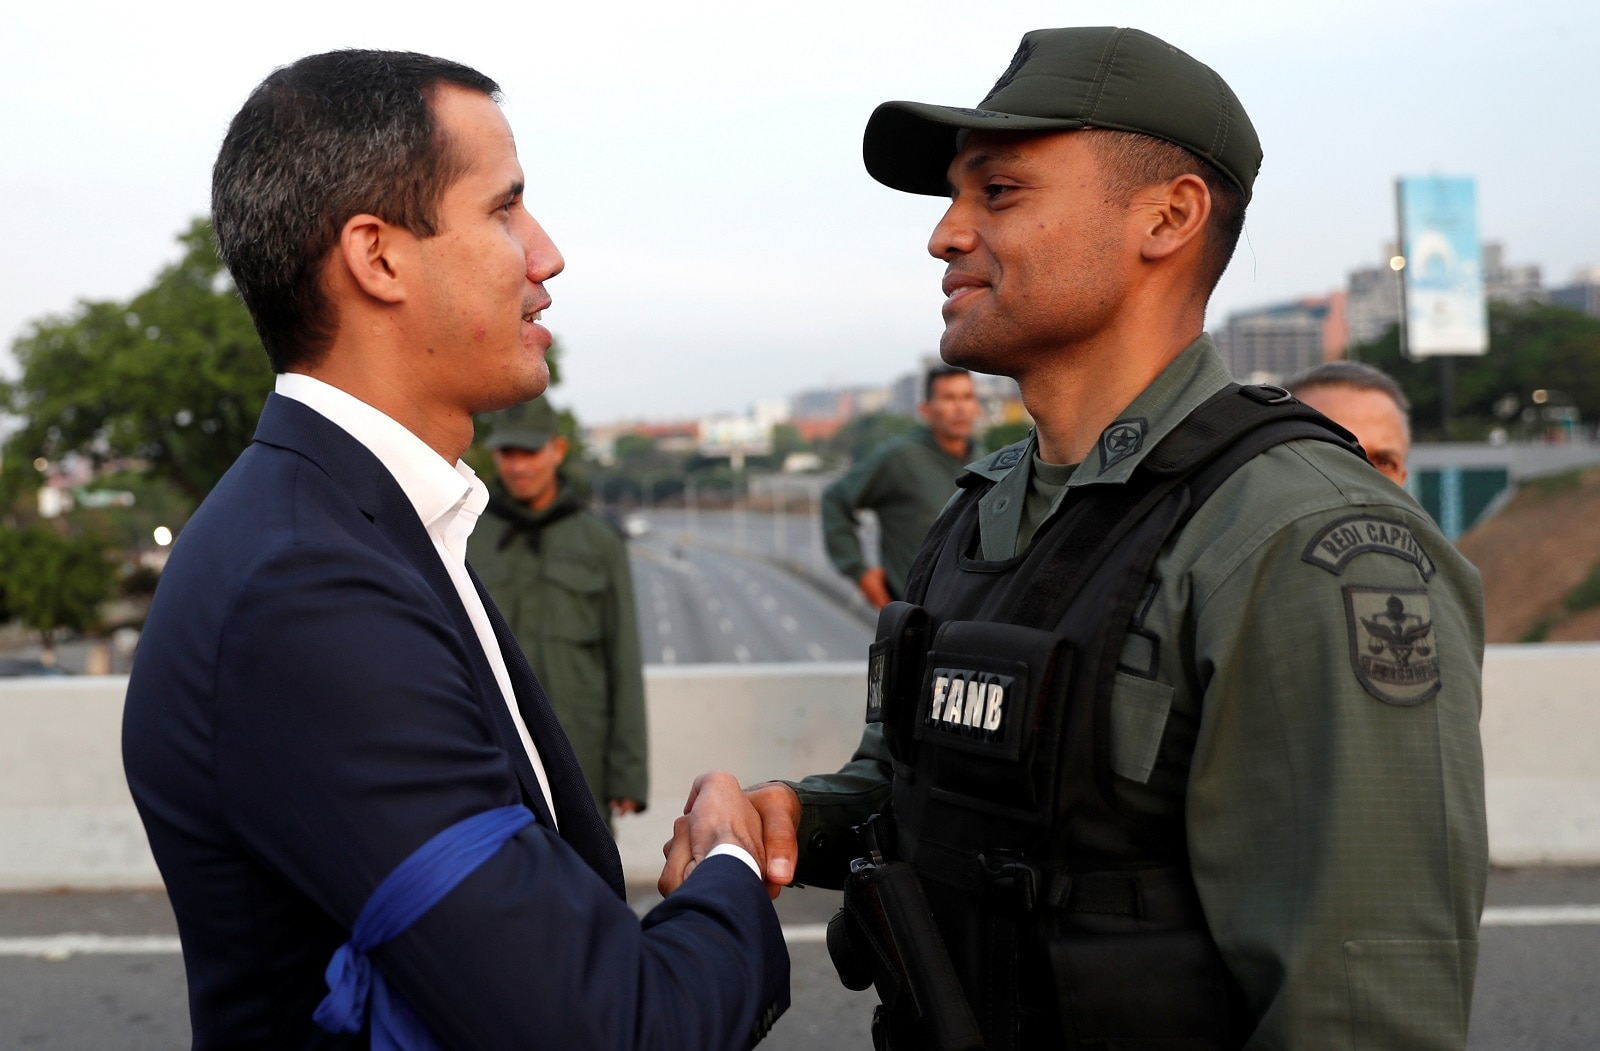 Venezuelan opposition leader Juan Guaido, who many nations have recognised as the country's rightful interim ruler, shakes hands with a military member near the Generalisimo Francisco de Miranda Airbase